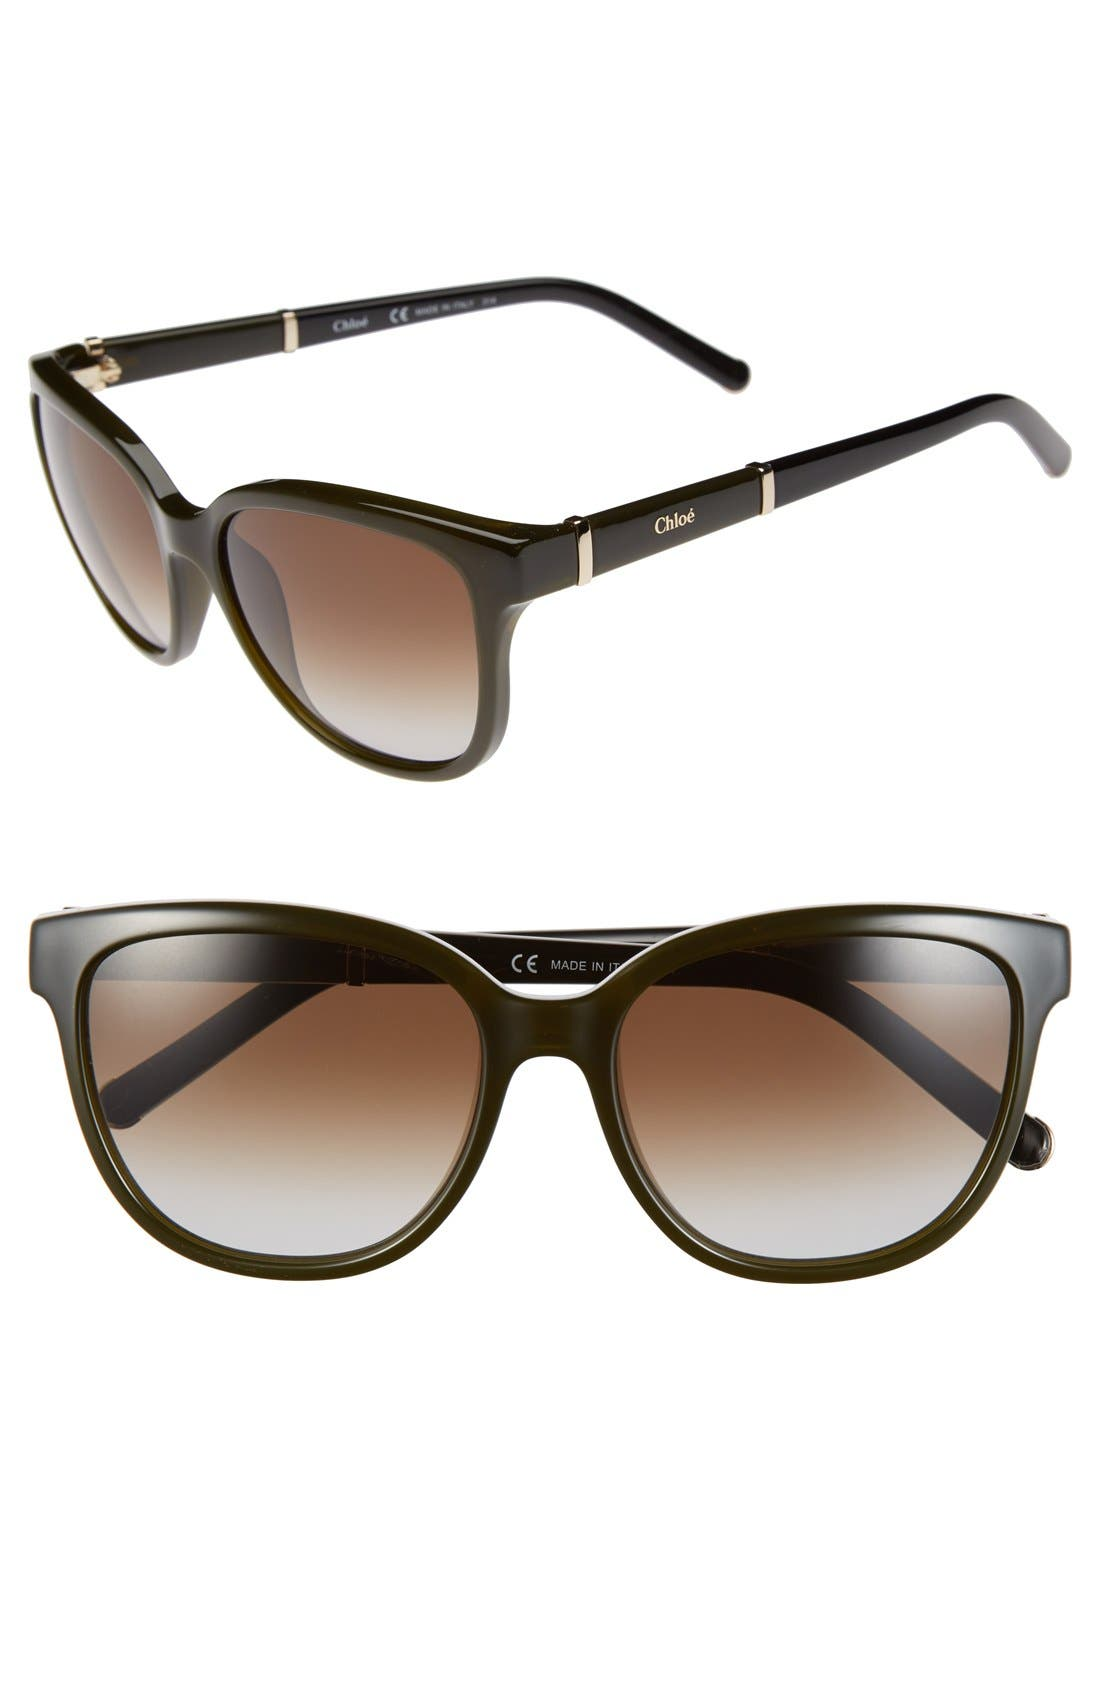 Main Image - Chloé 'Daisy' 54mm Sunglasses